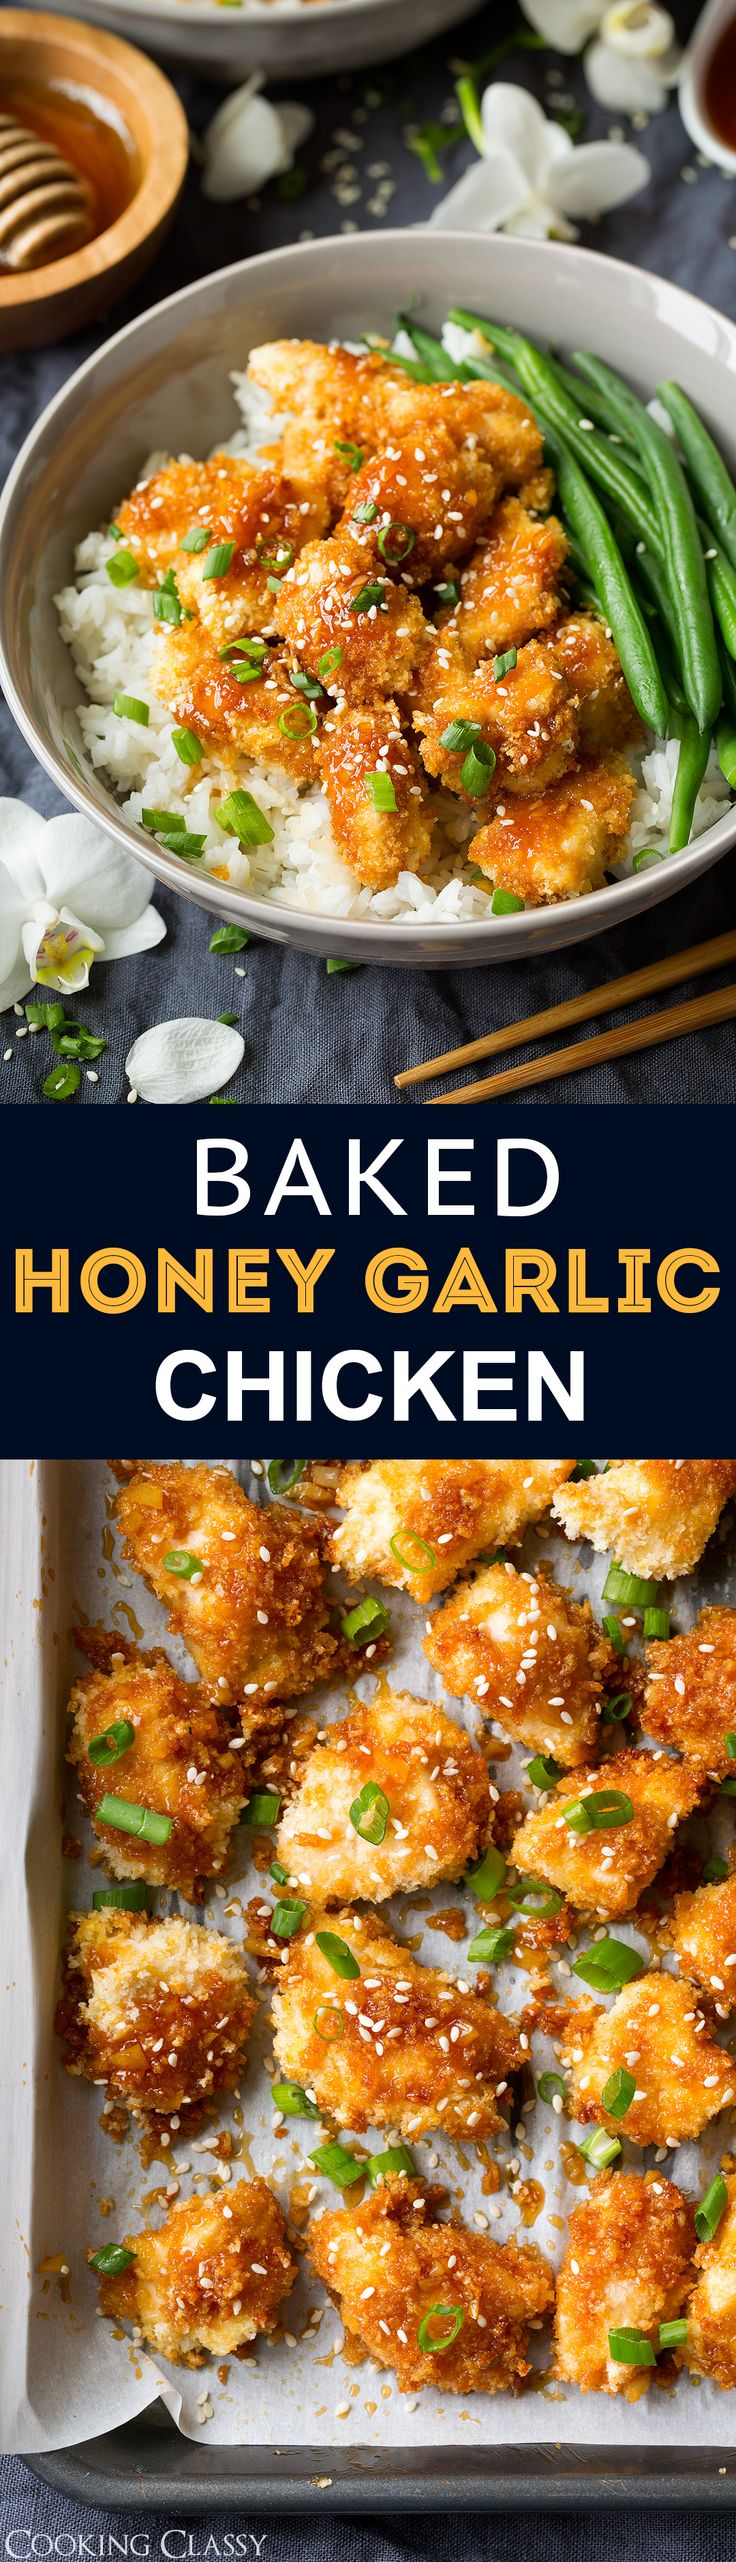 Baked Honey Garlic Chicken recipe from @cookingclassy